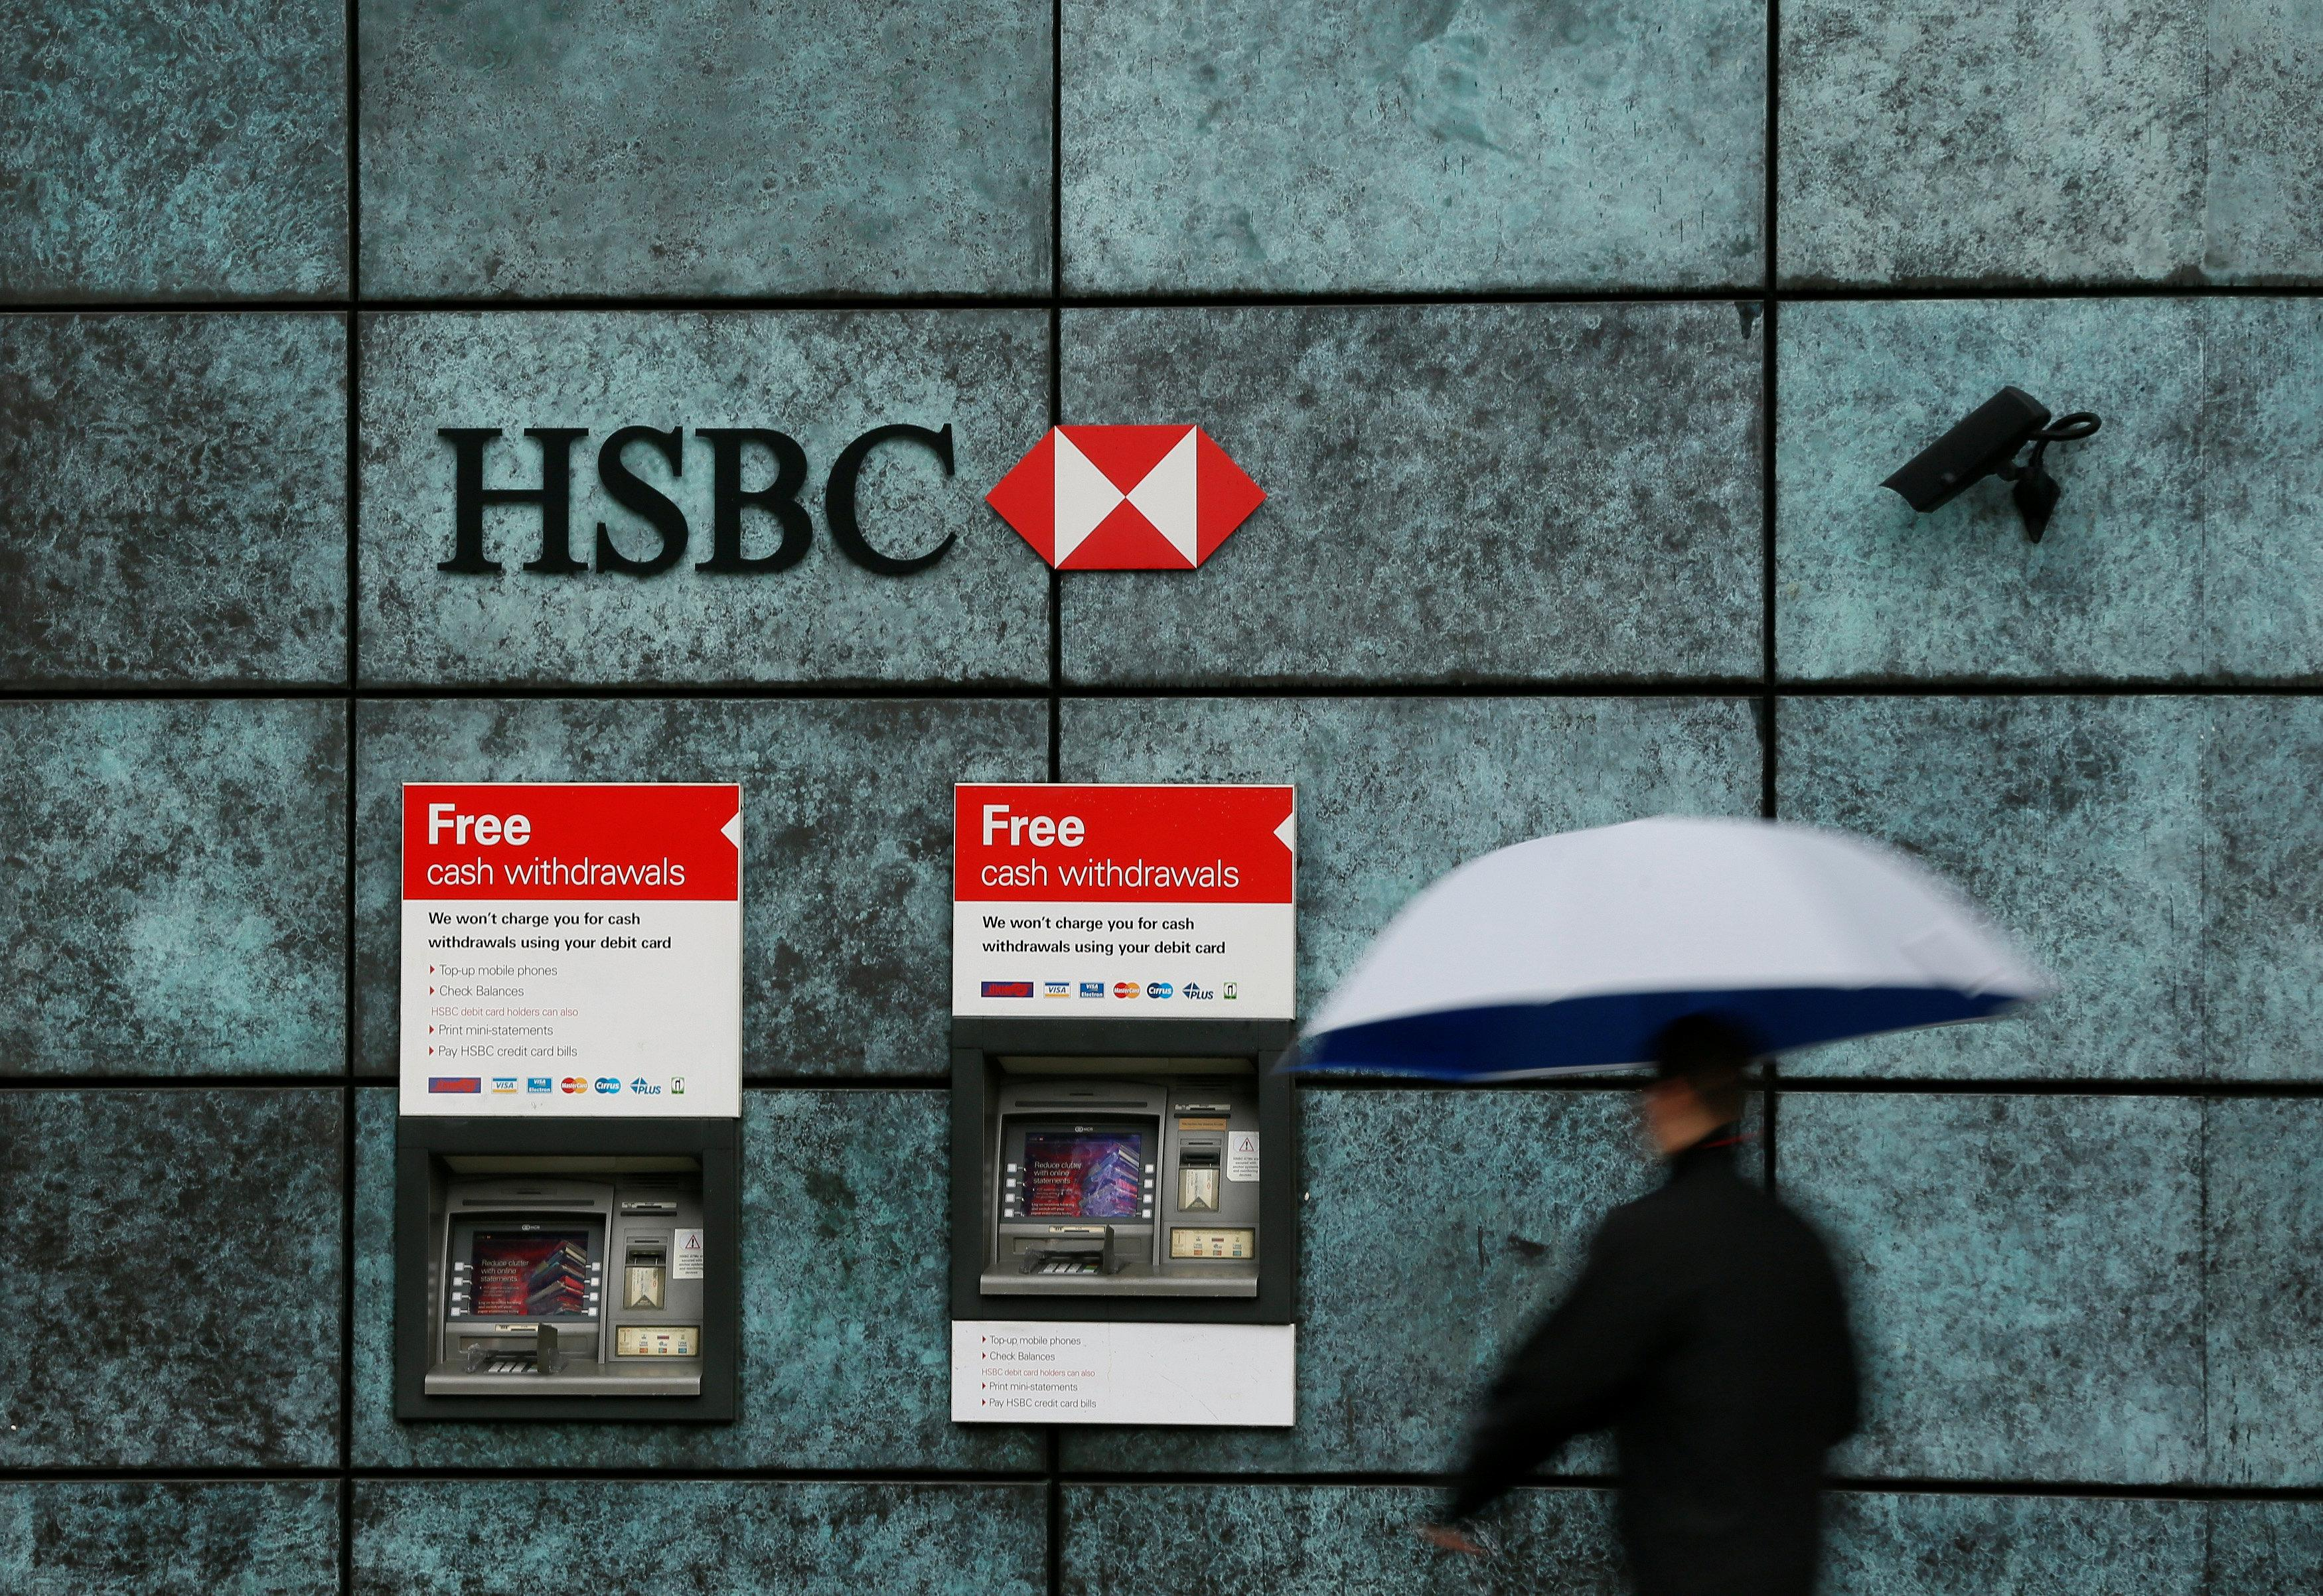 Exclusive: Small UK companies complain after HSBC accounts frozen